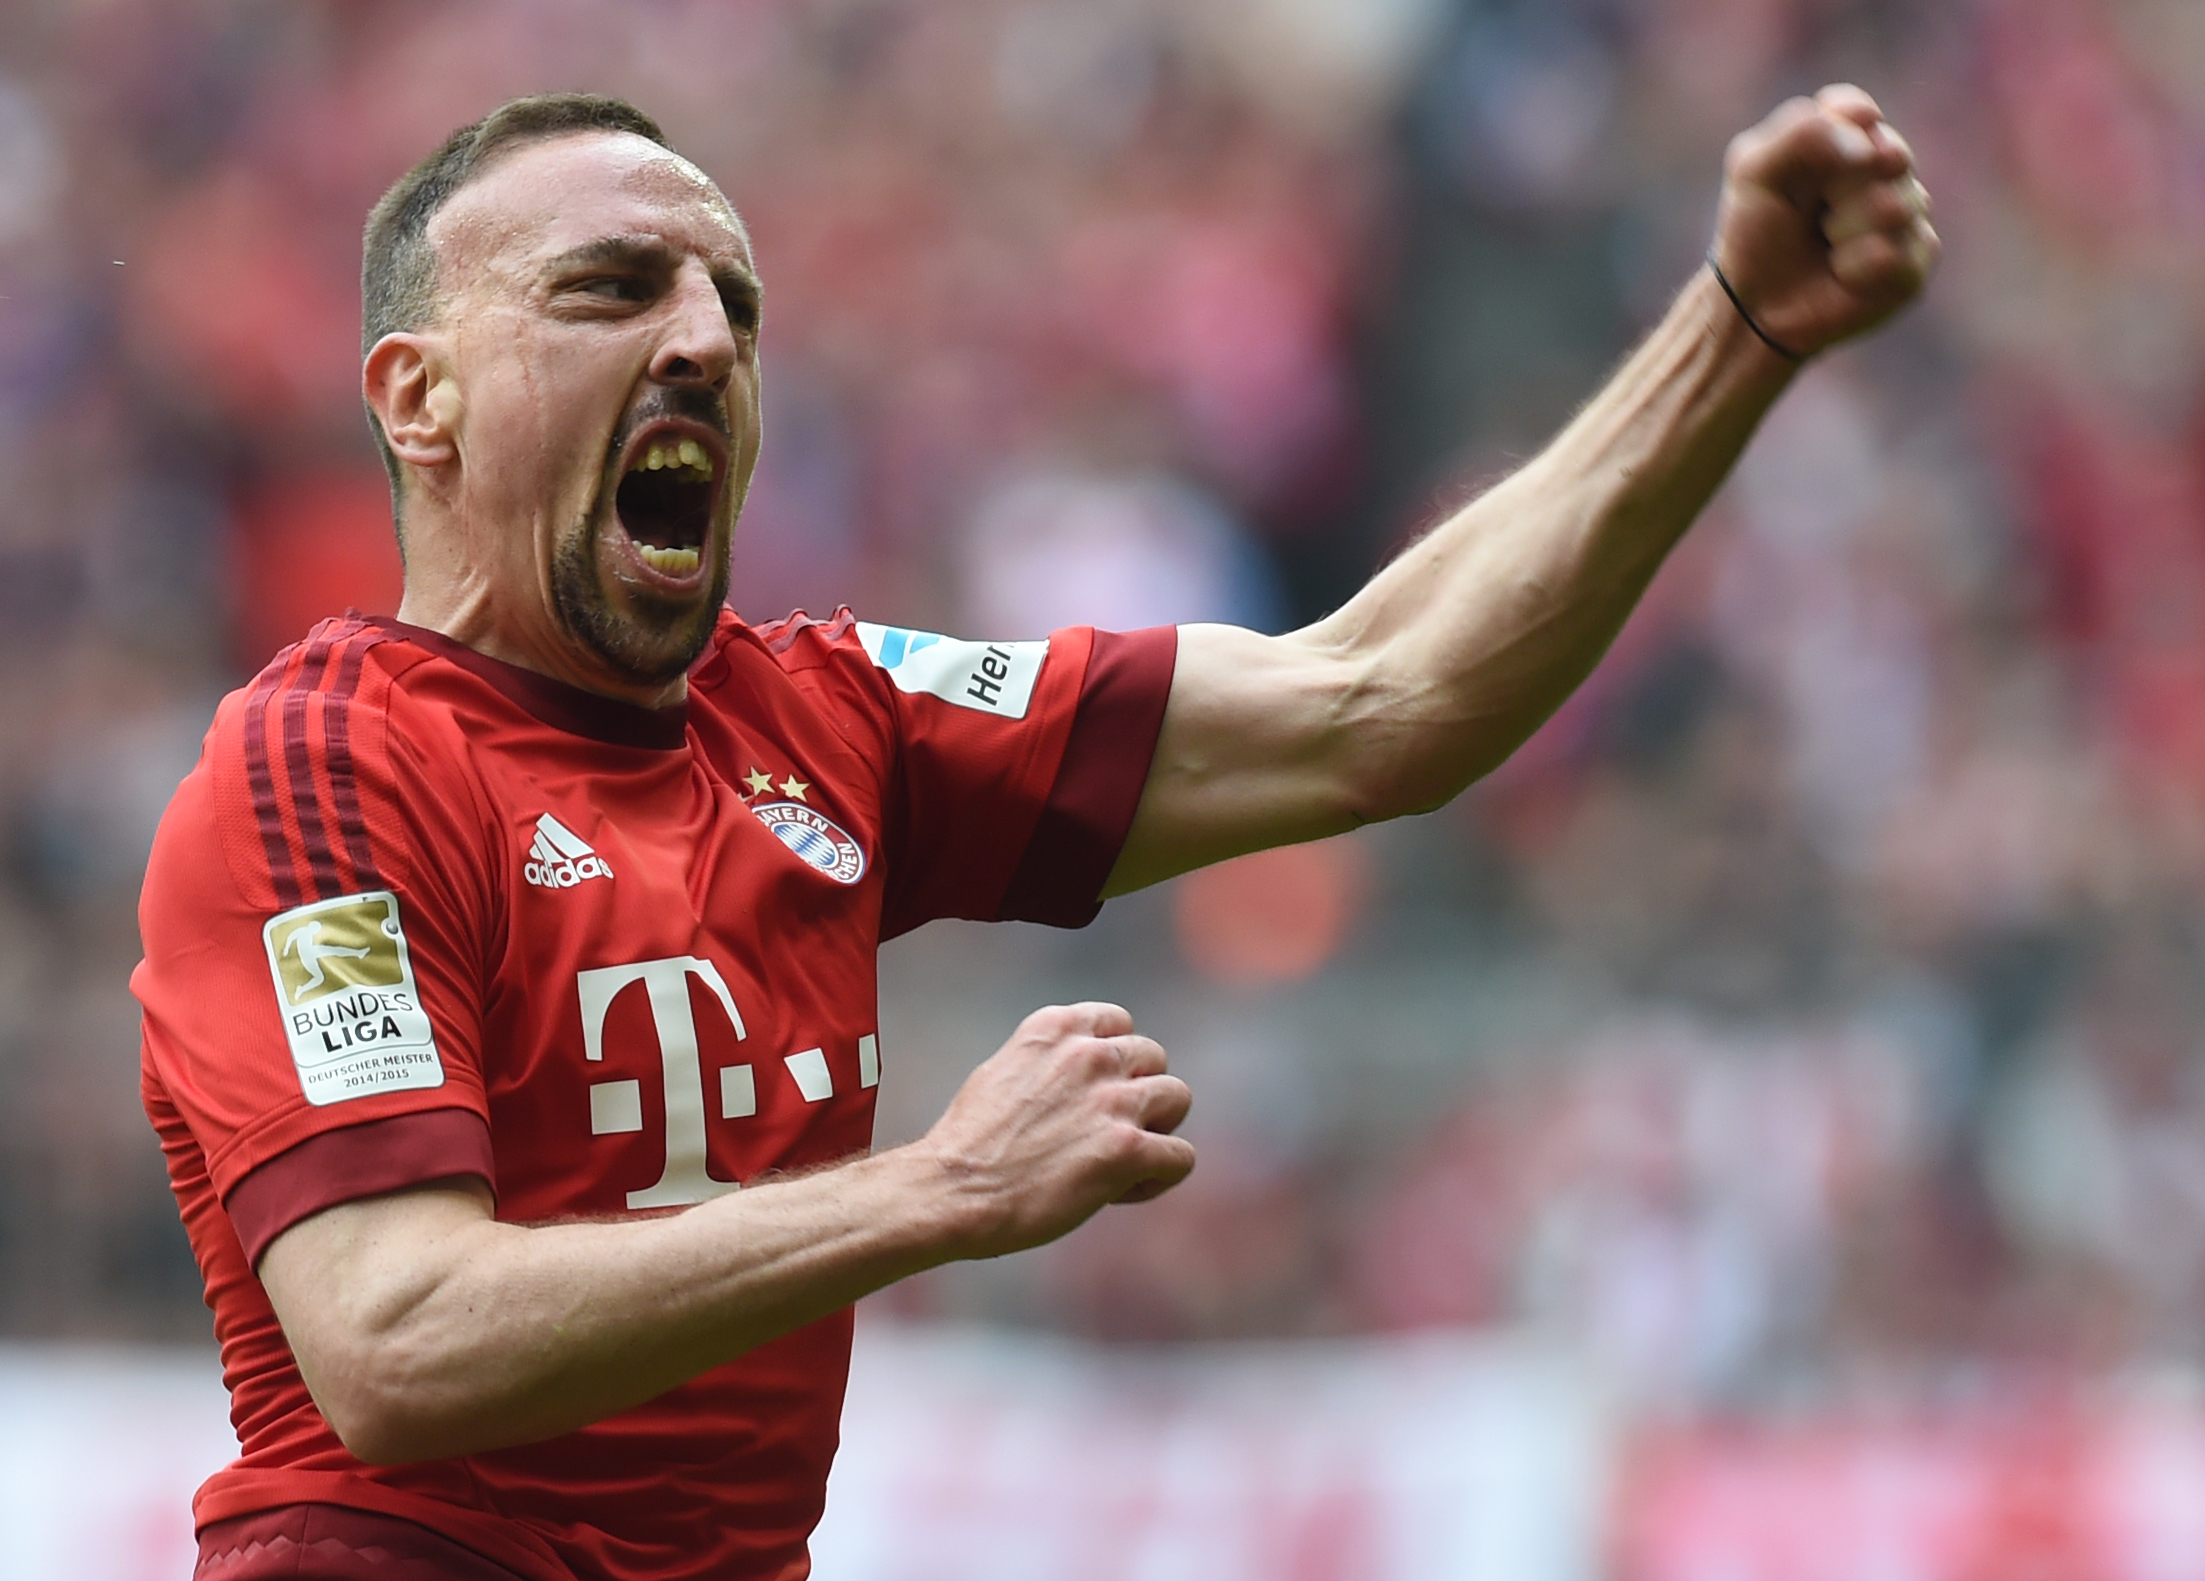 Benfica, Bayern Munich, Benfica Bayern Munich, Benfica lineup, Bayern Munich lineup, Bayern lineup, Bayern Munchen line up, today, Bayern Munich starting lineup today, champions League channel, bayern munich channel, Bayern Munich vs. Benfica, Bayern Munich vs. Benfica channel